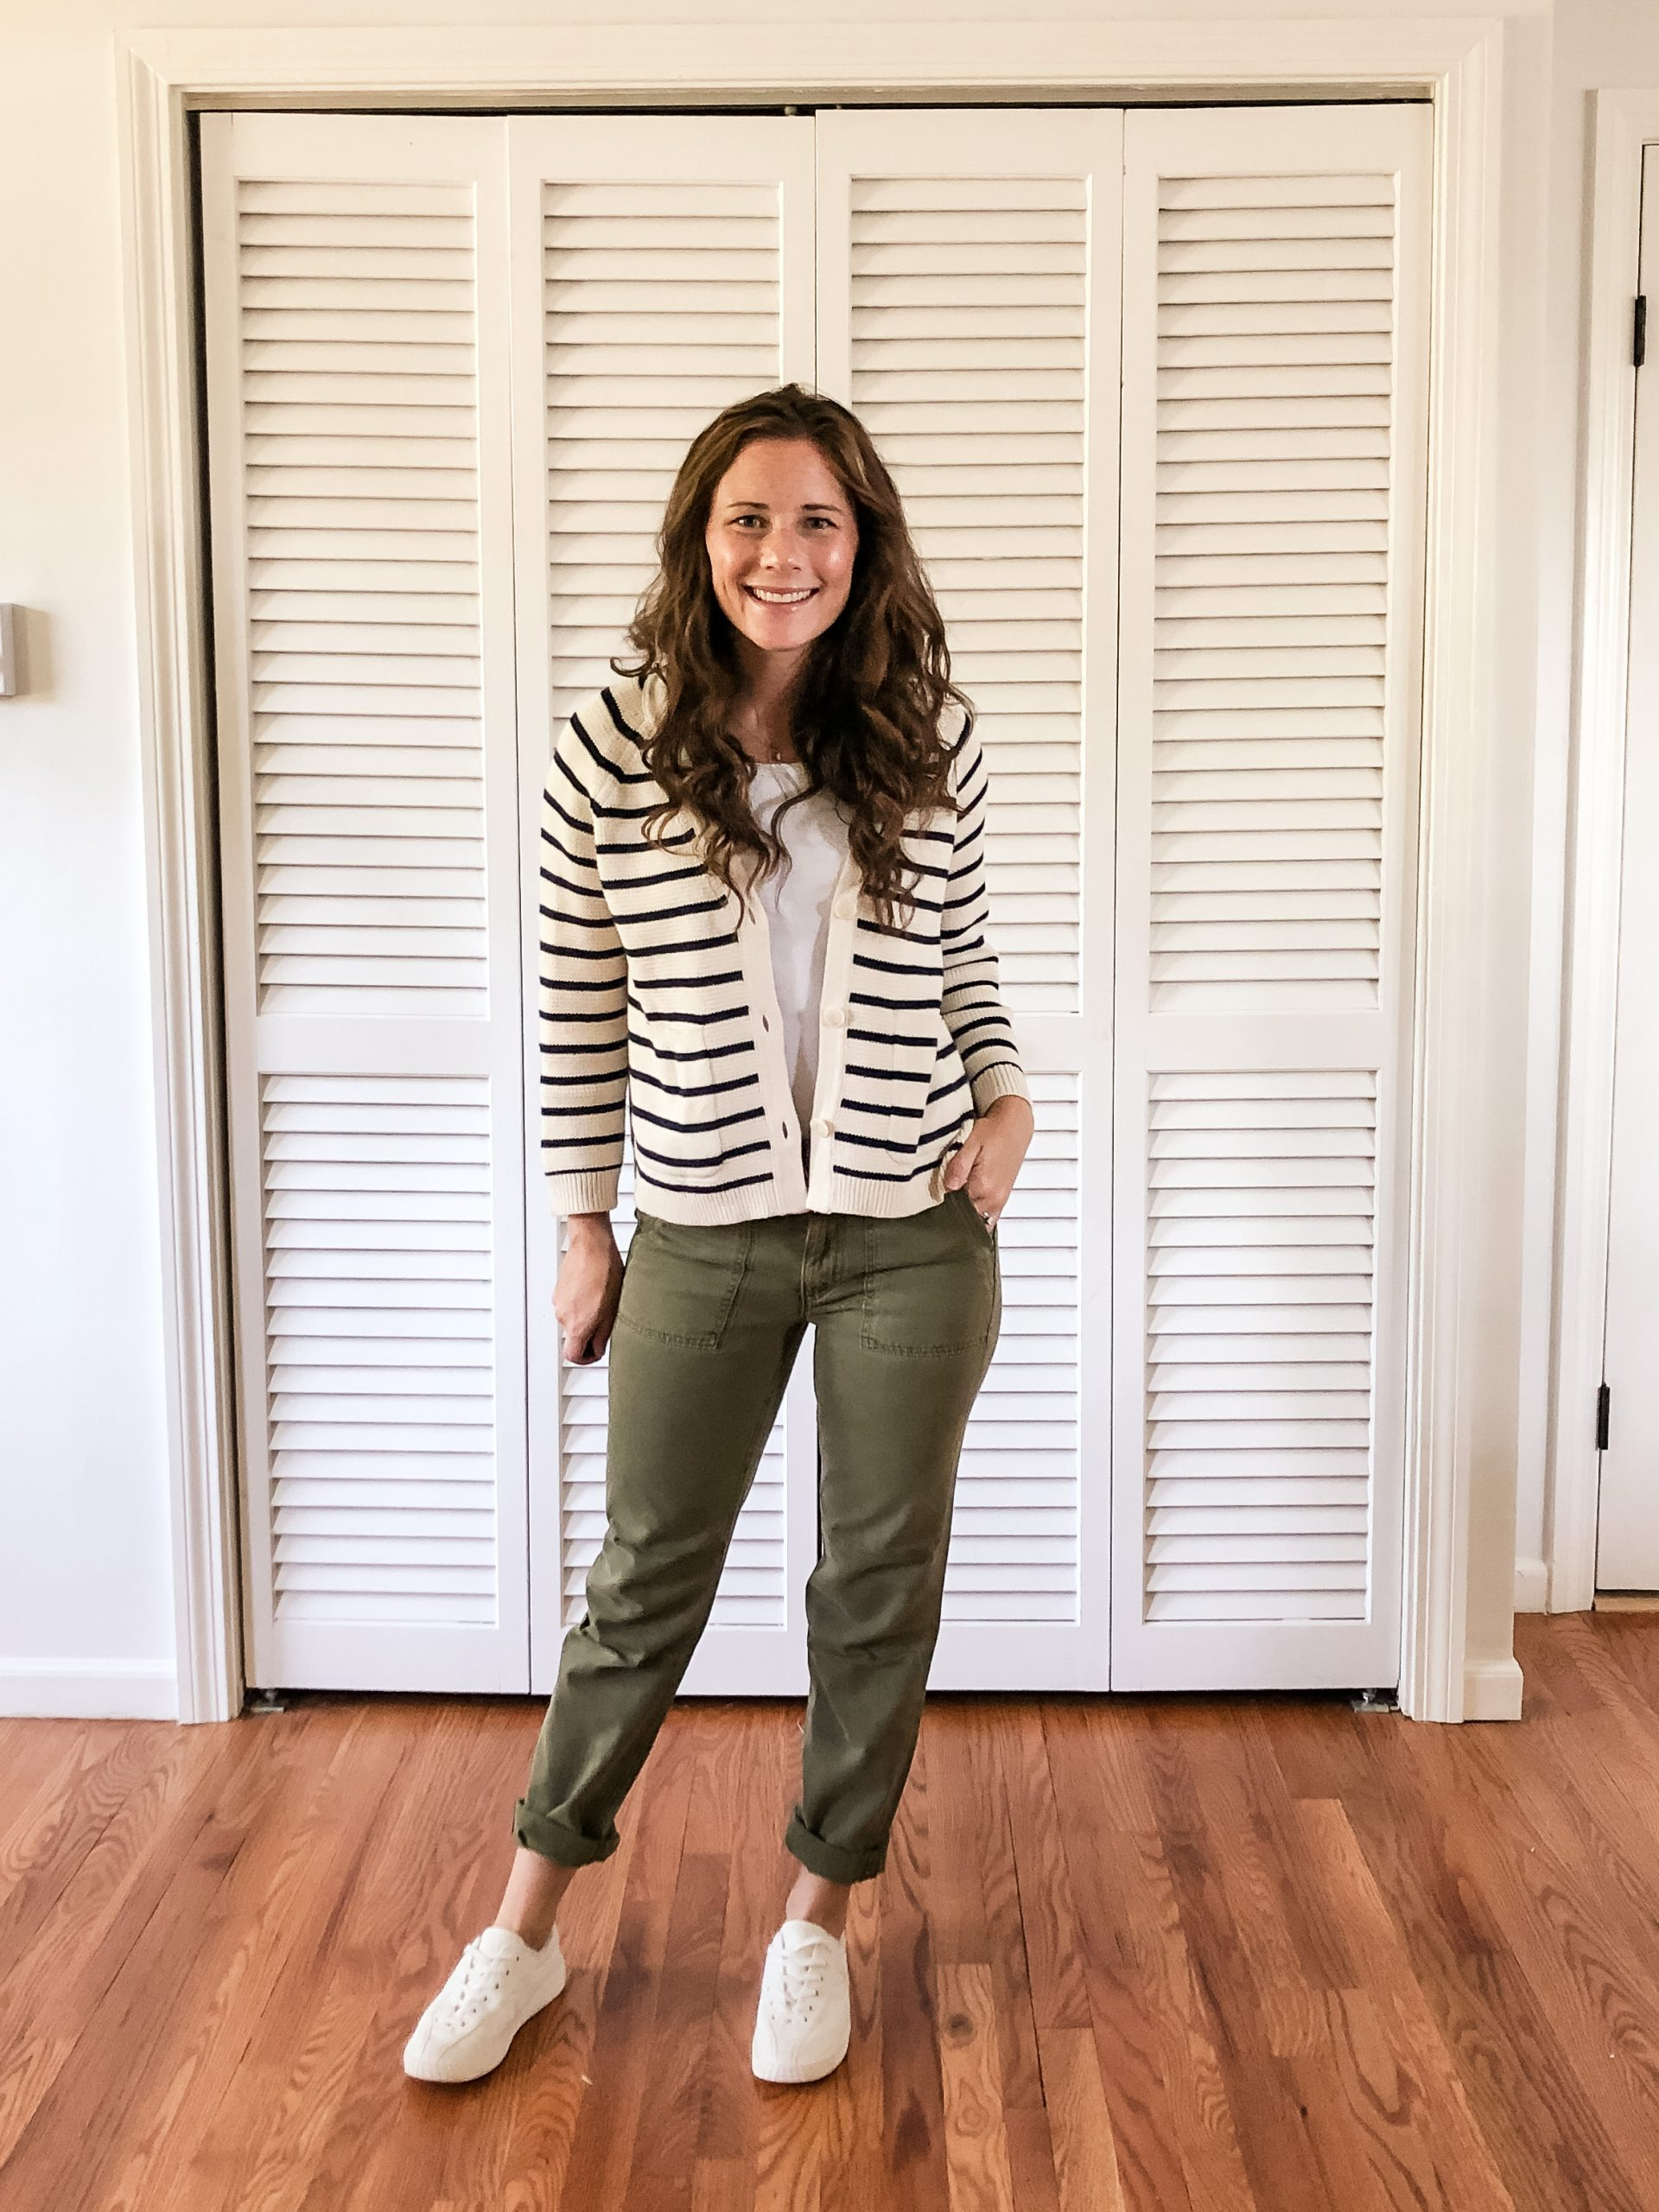 Striped V Neck Cardigan from JCrew with Olive Utility Pants Early Fall Outfit